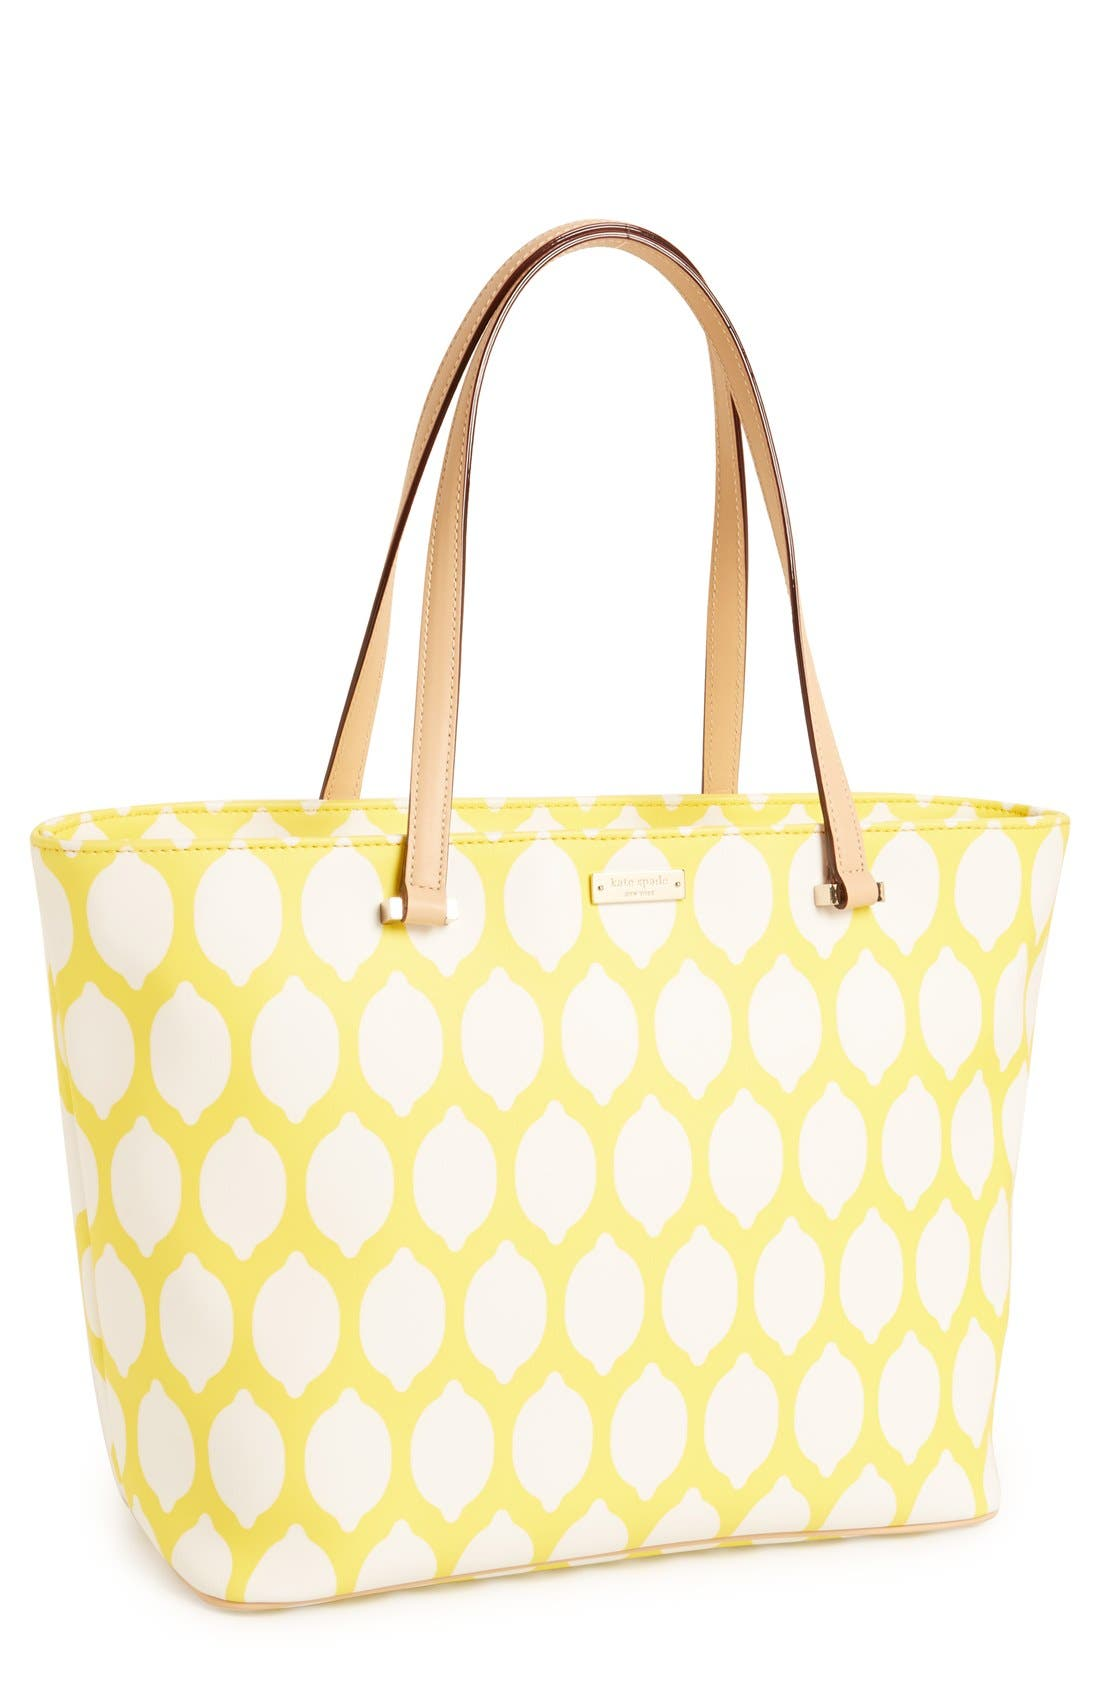 Main Image - kate spade new york 'francis' tote